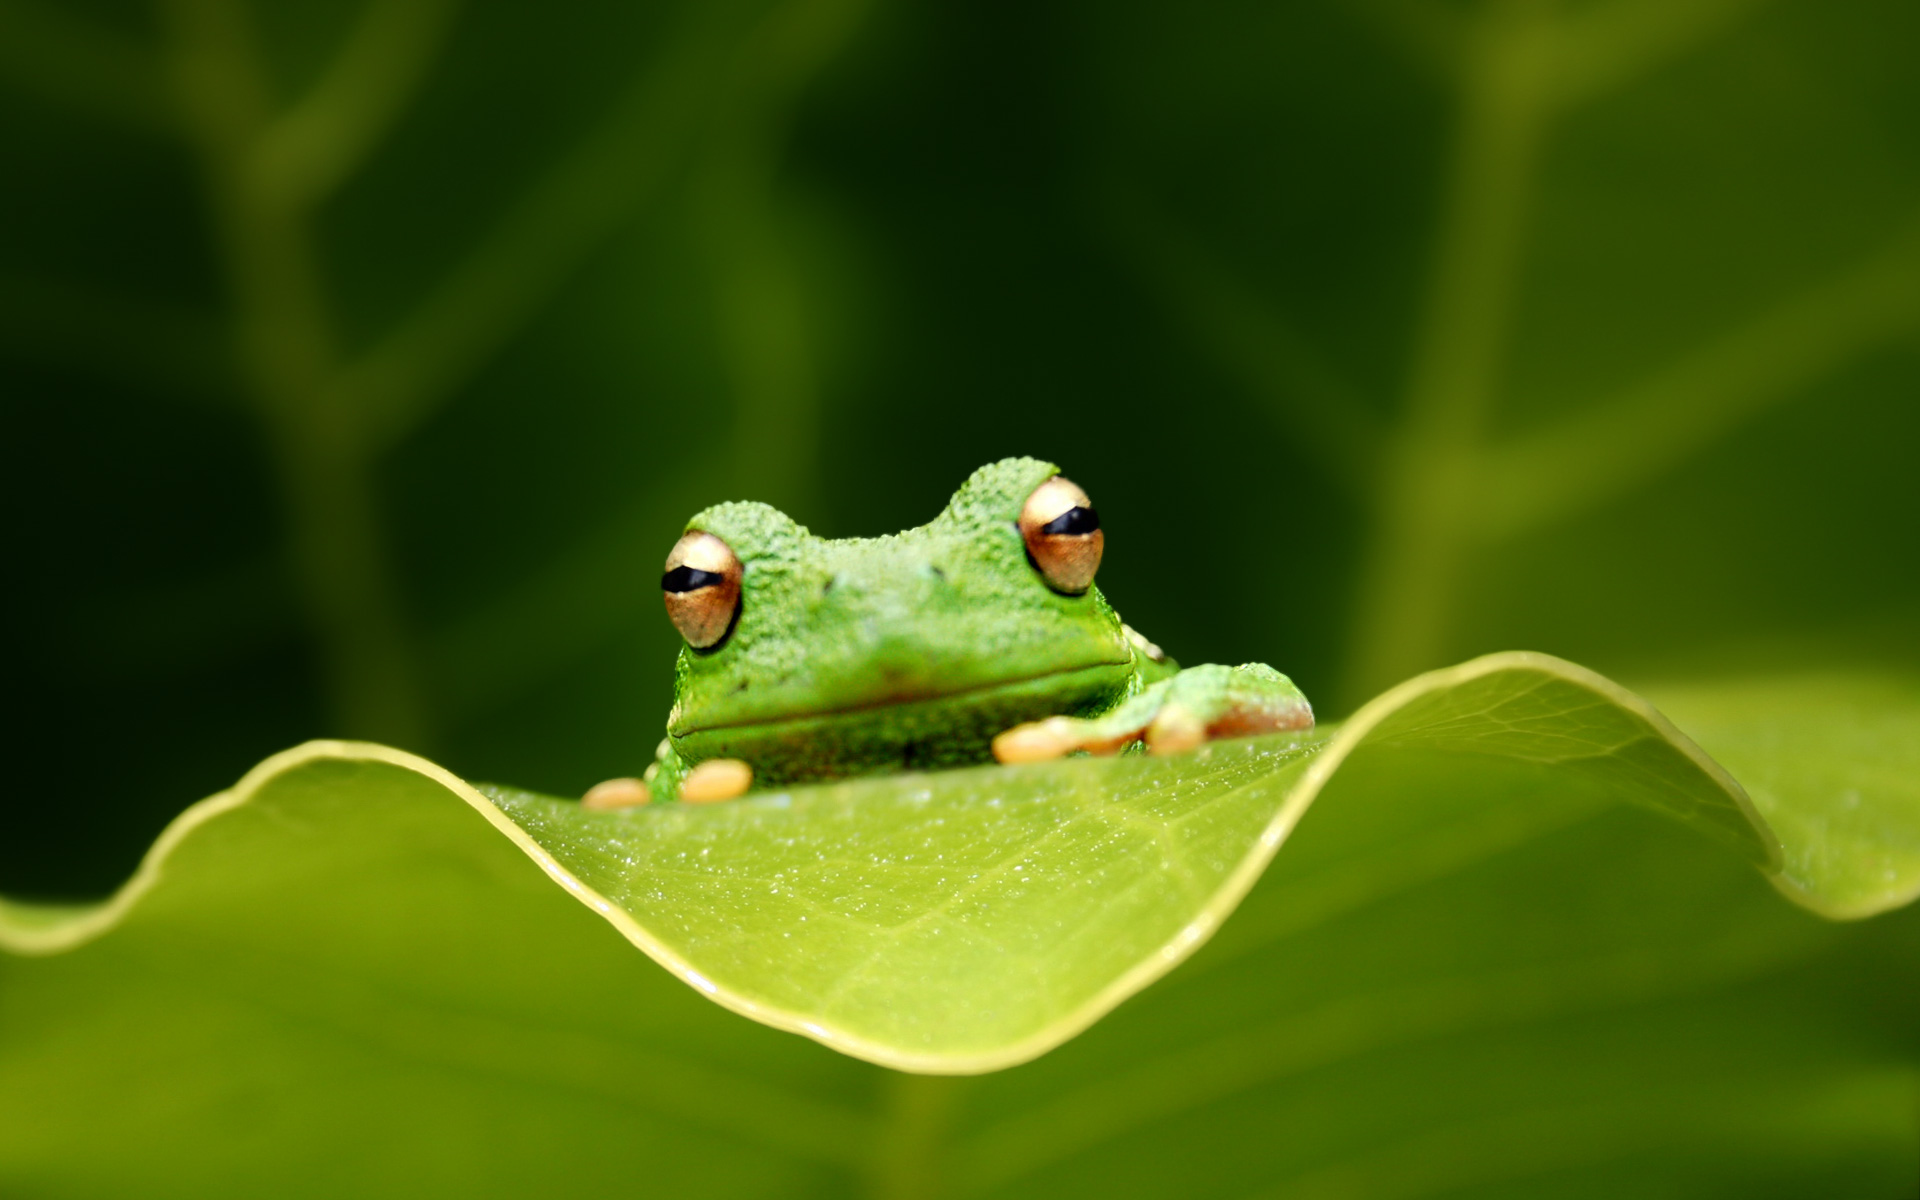 Green Frog HD 3 45840 HD Images Wallpapers